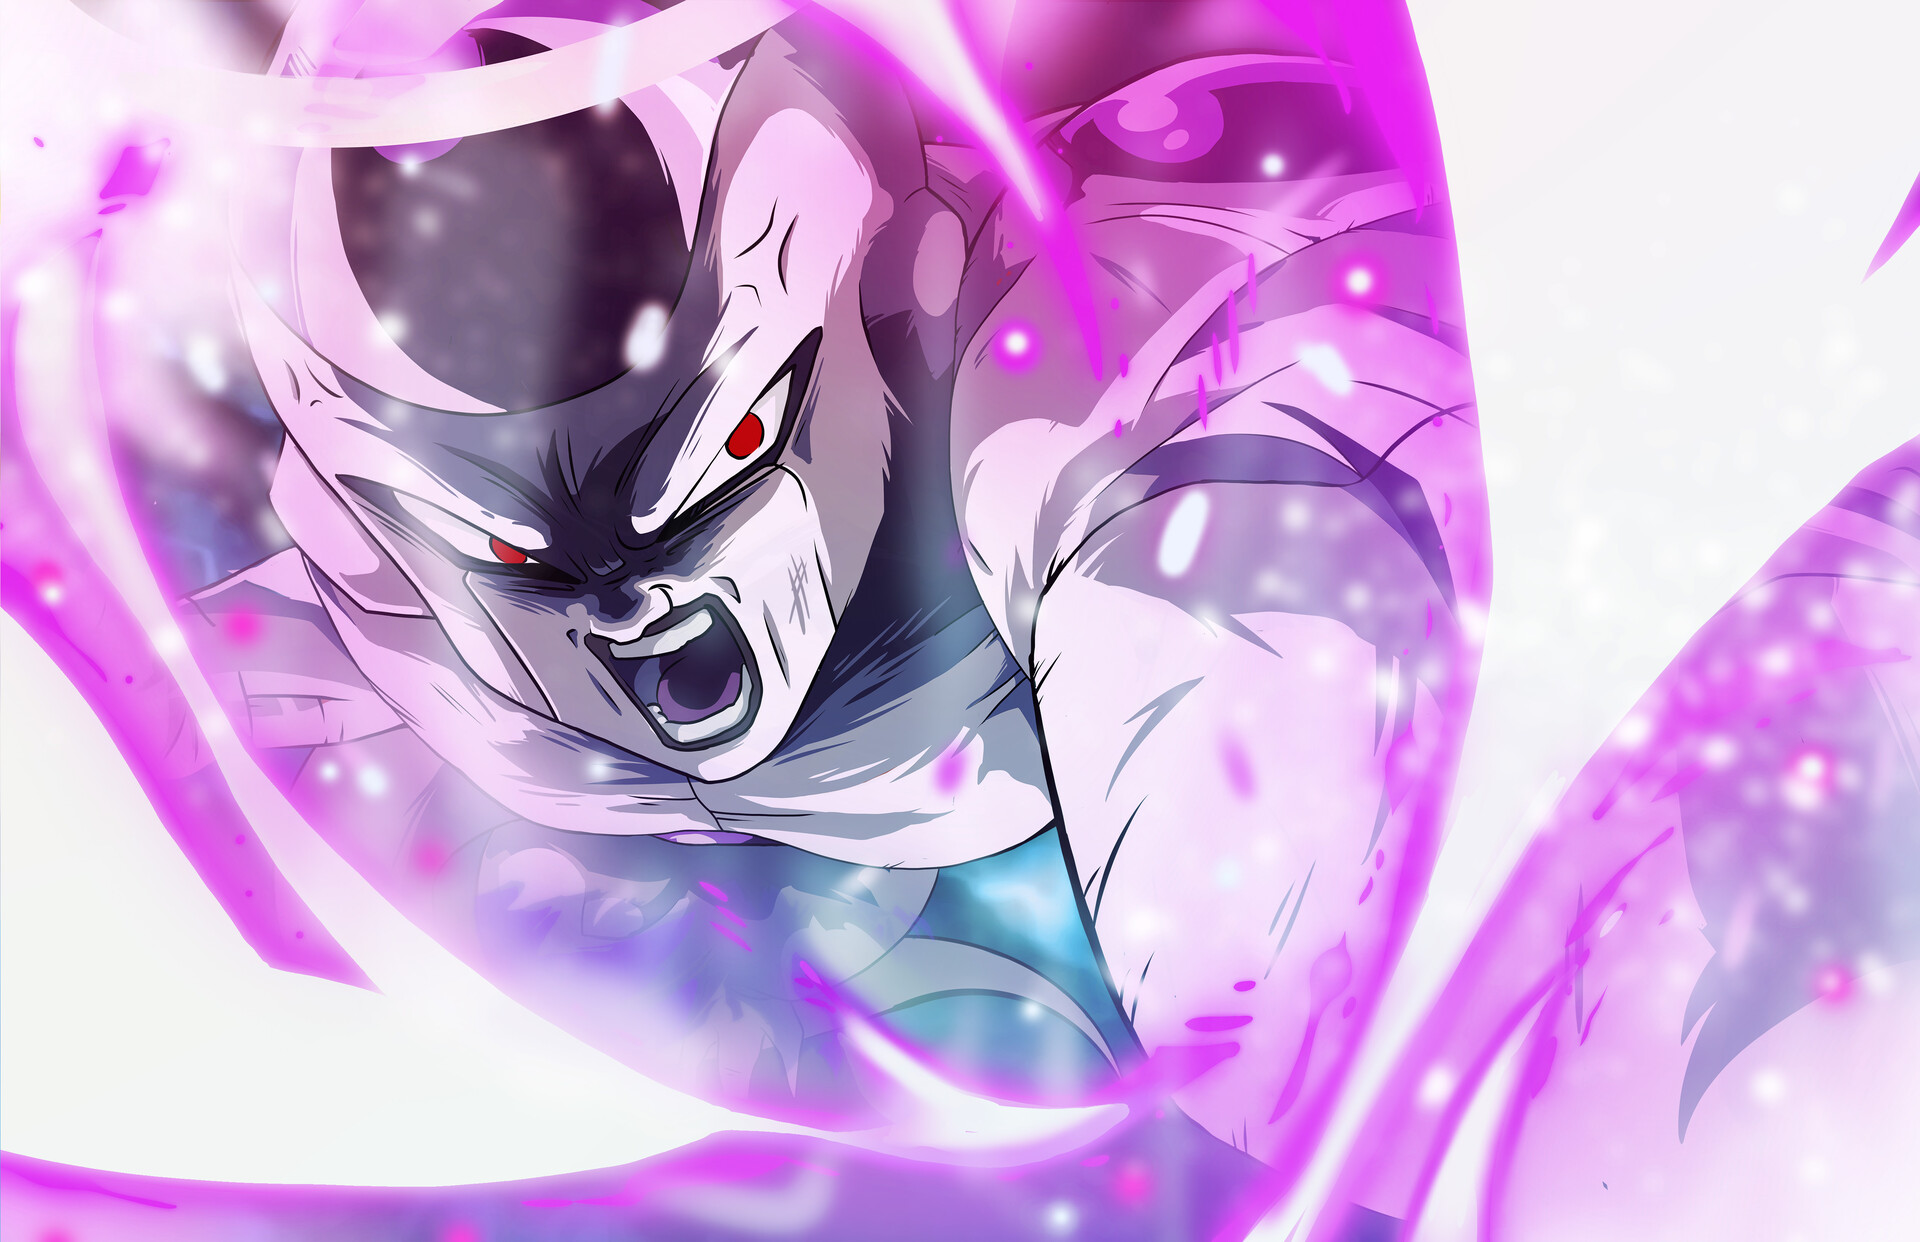 Logan carroll freeza ui 1